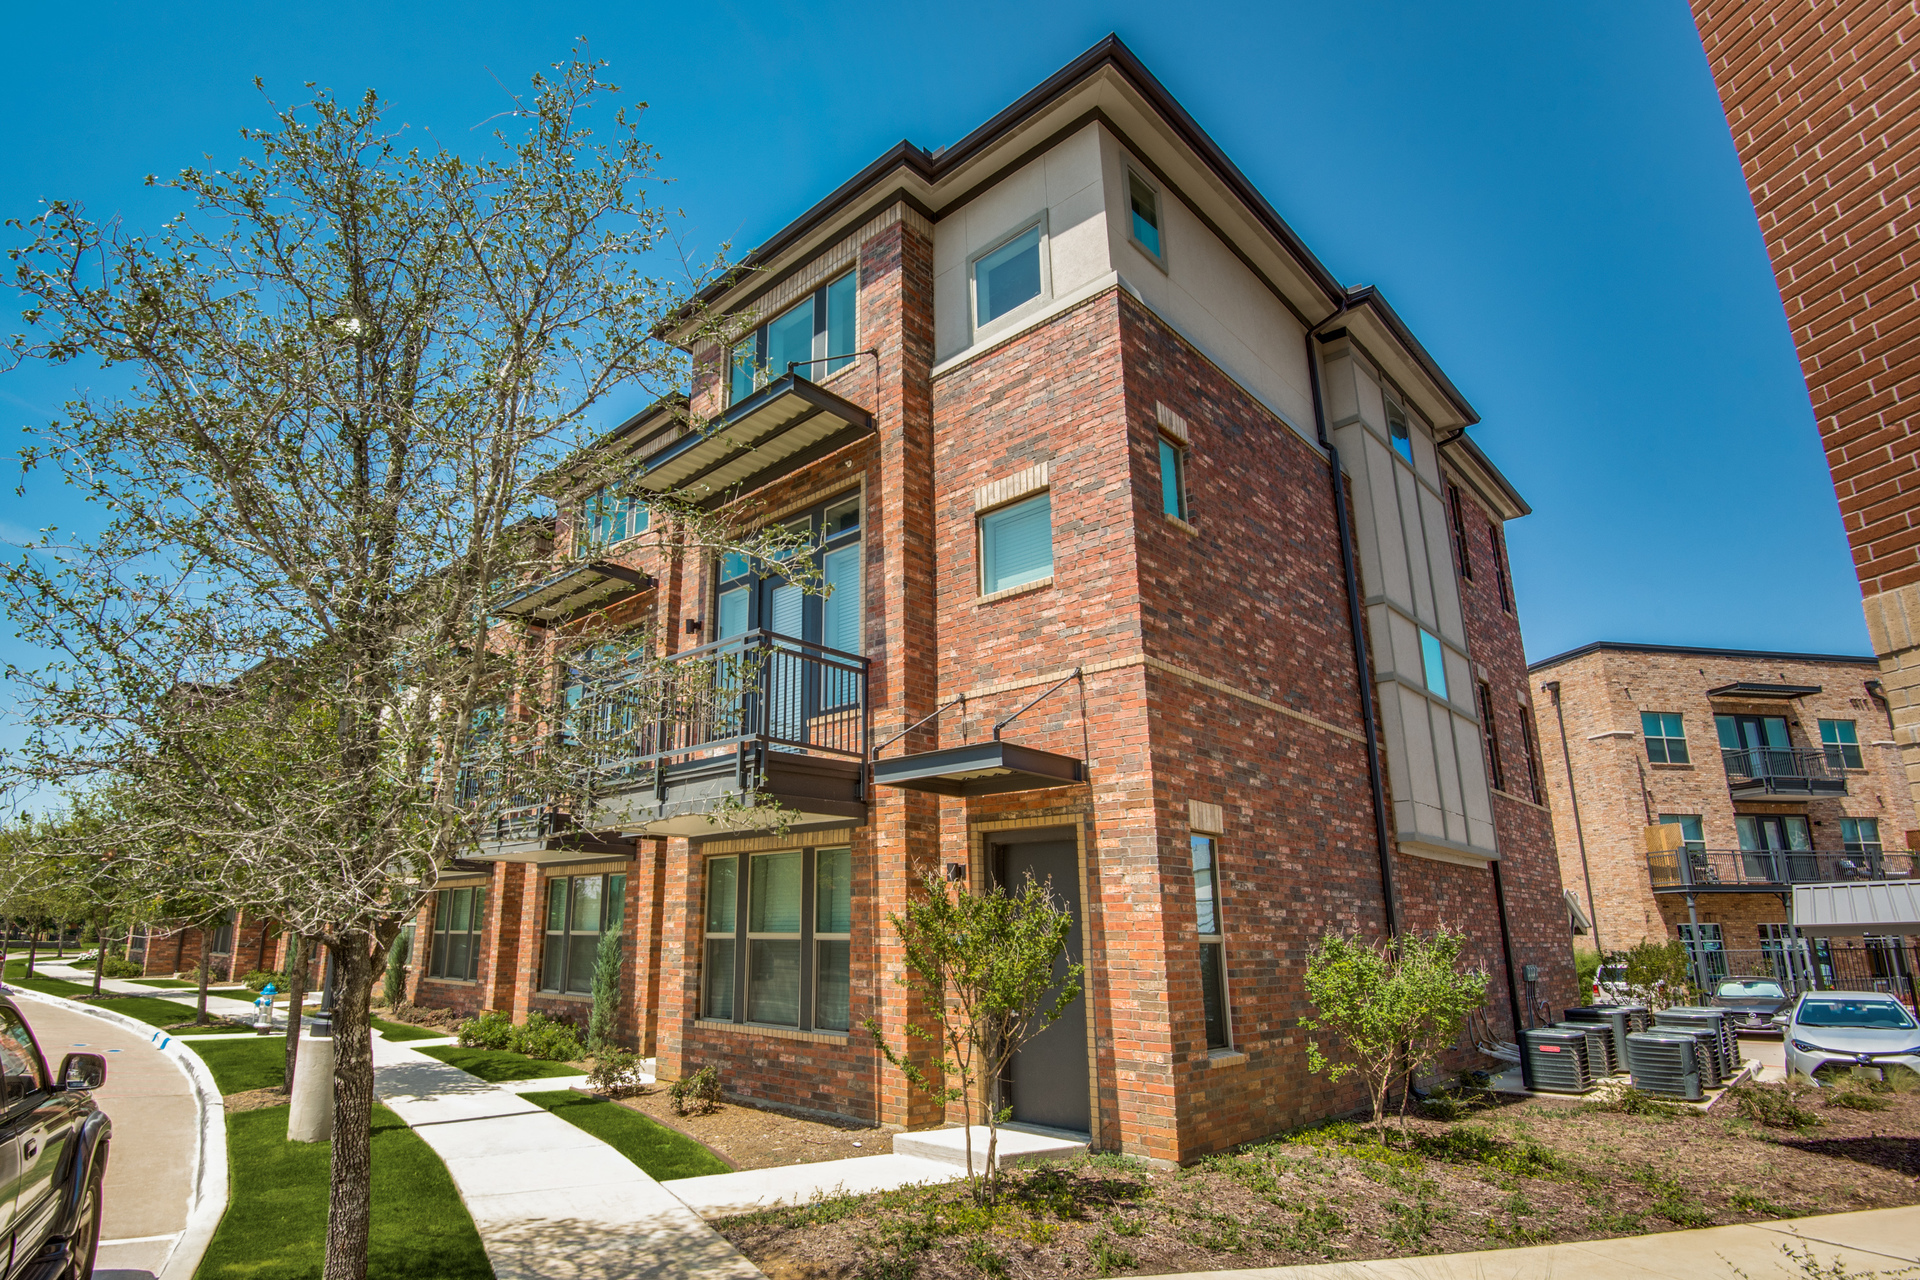 The exterior of Hillstone River Walk luxury apartments and townhomes in Flower Mound, Texas, by Hensley Lamkin Rachel, Inc.